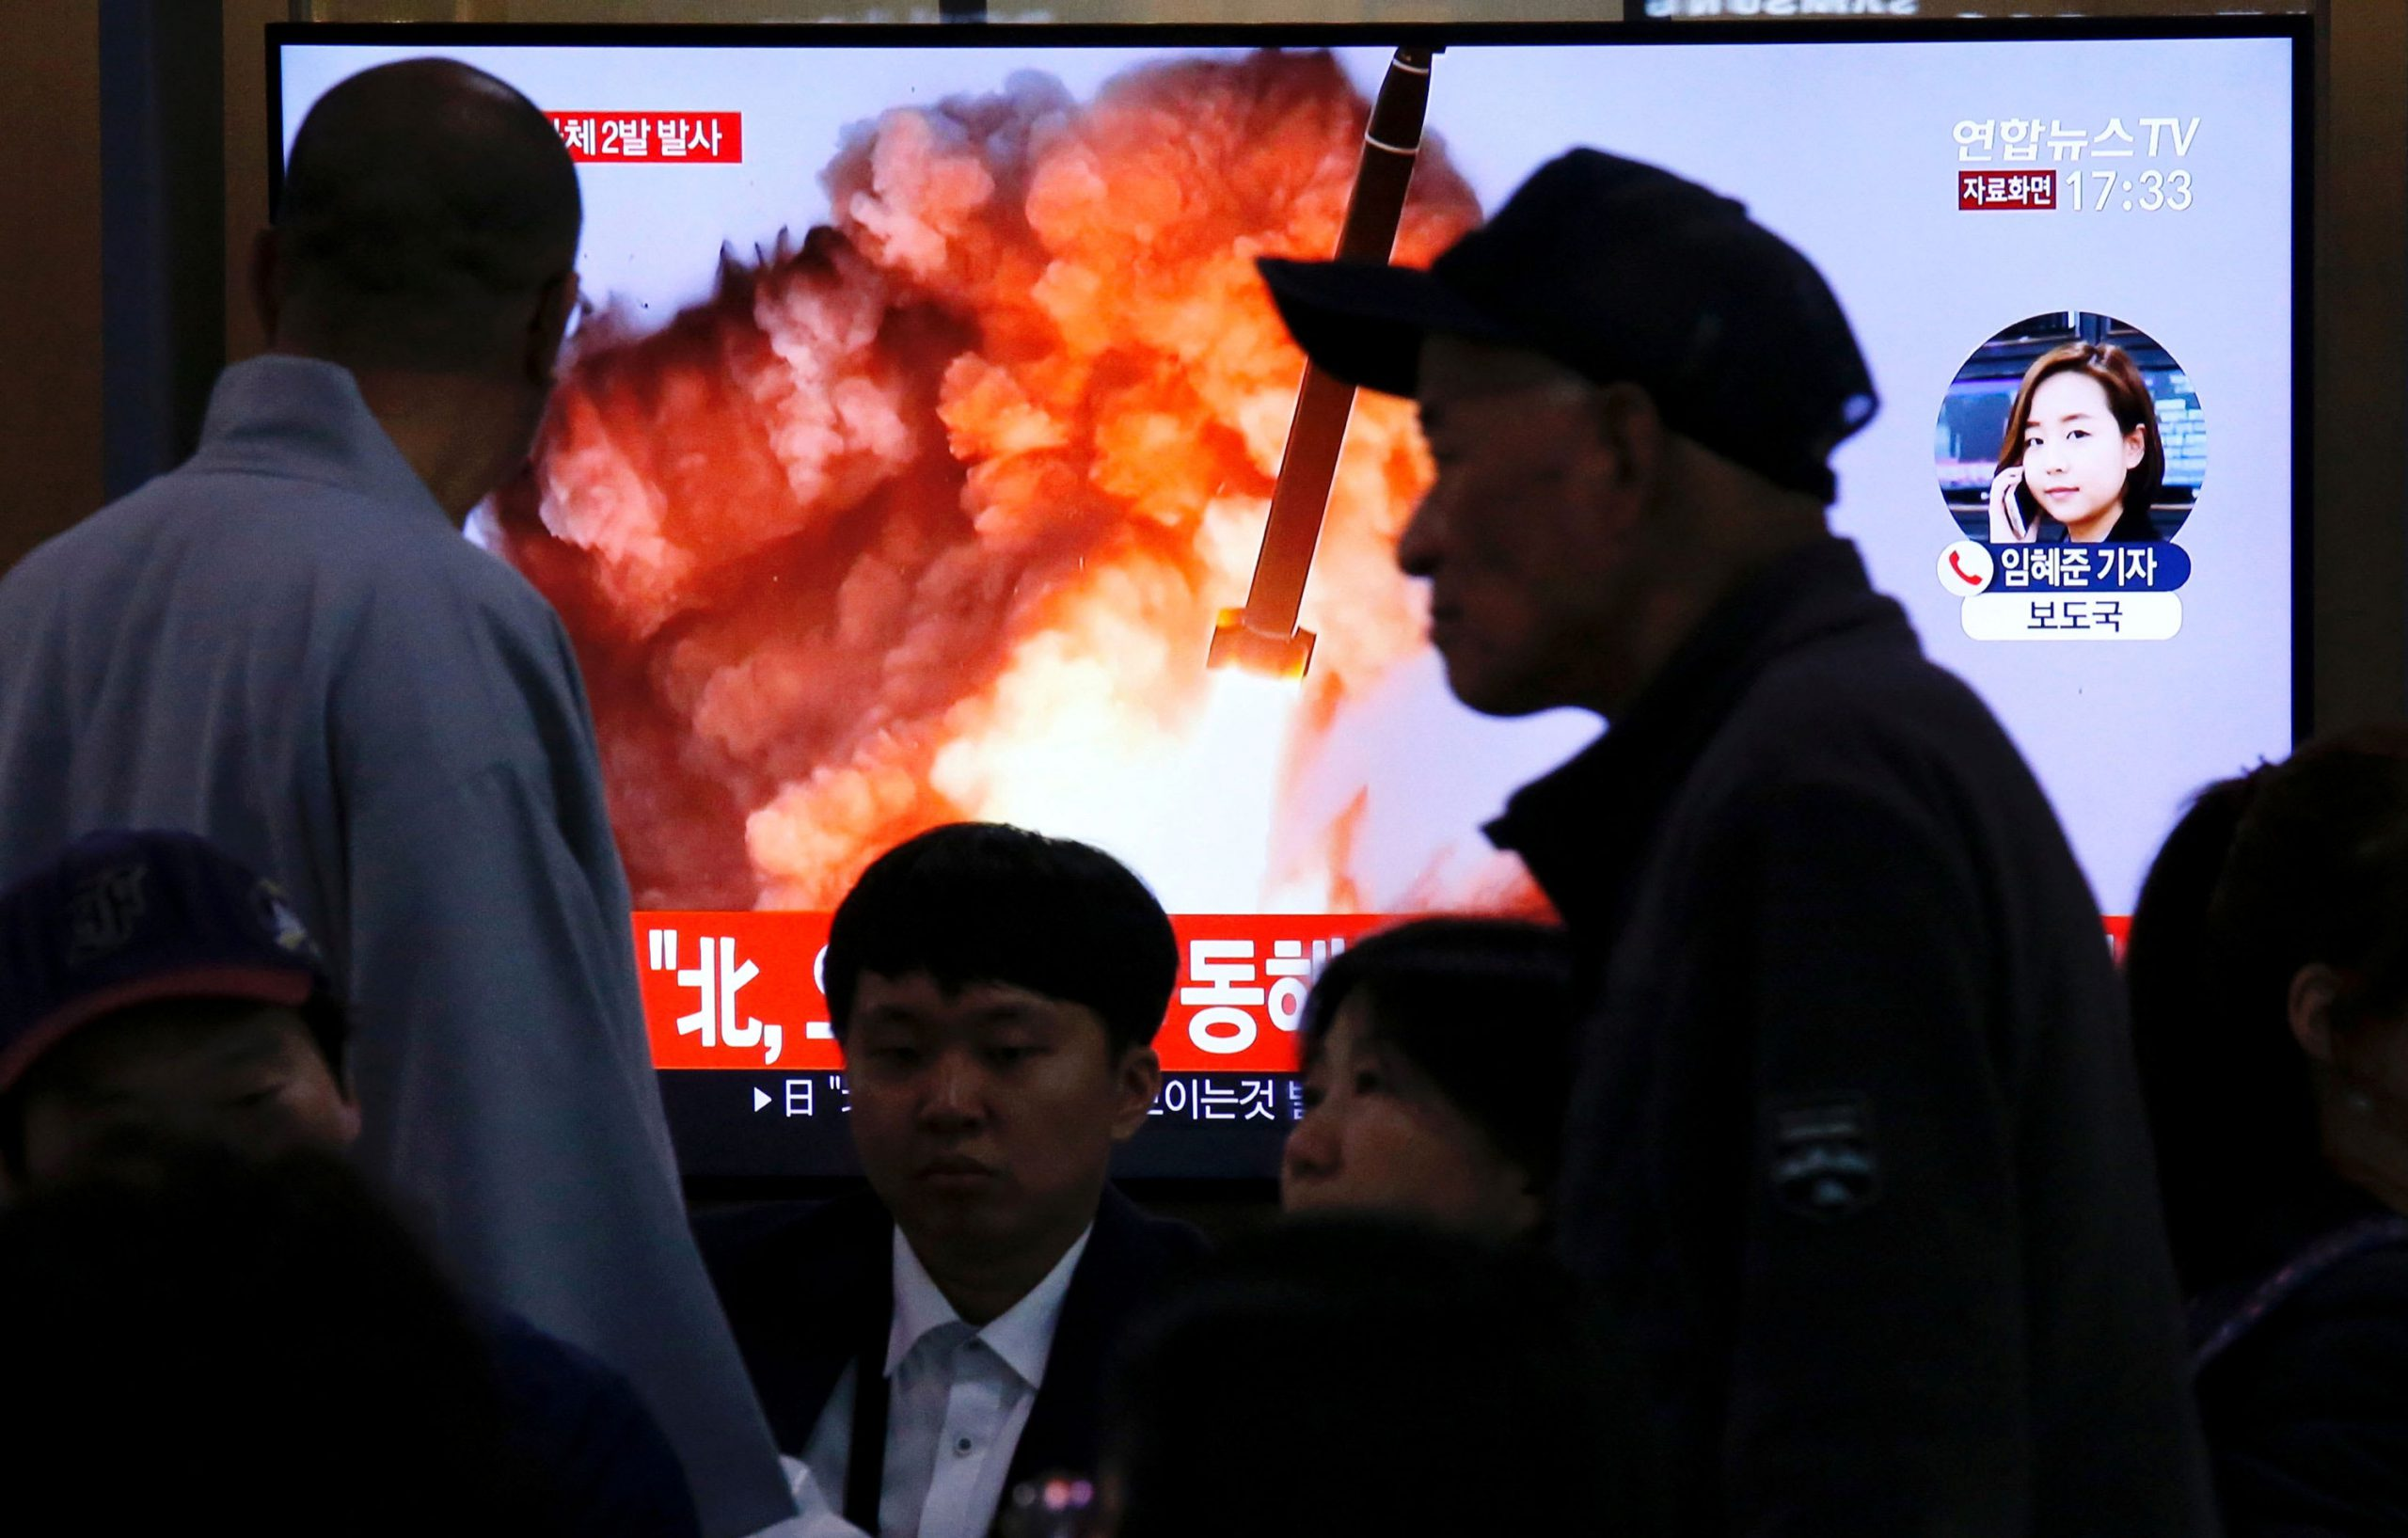 North Korea says it conducted another crucial test at satellite launch site: KCNA